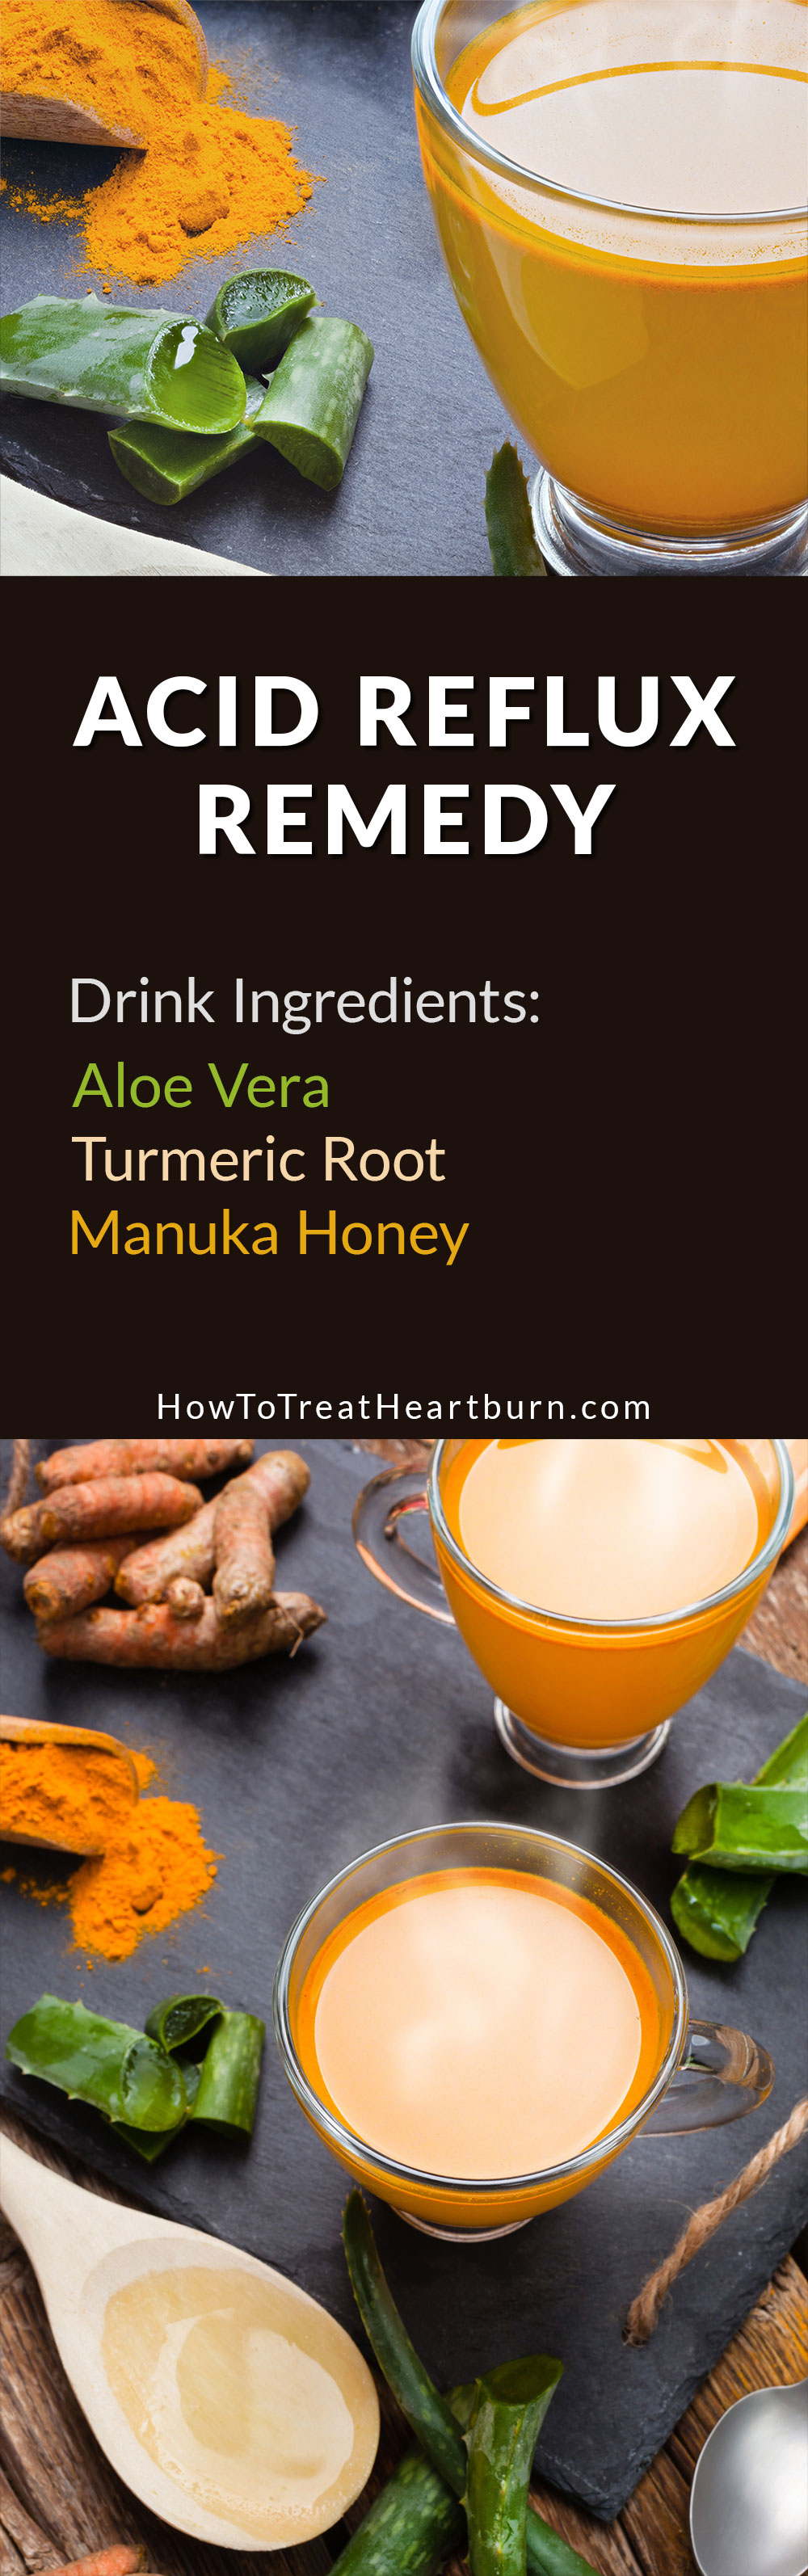 Aloe Vera Juice and Turmeric Drink Recipe For Heartburn